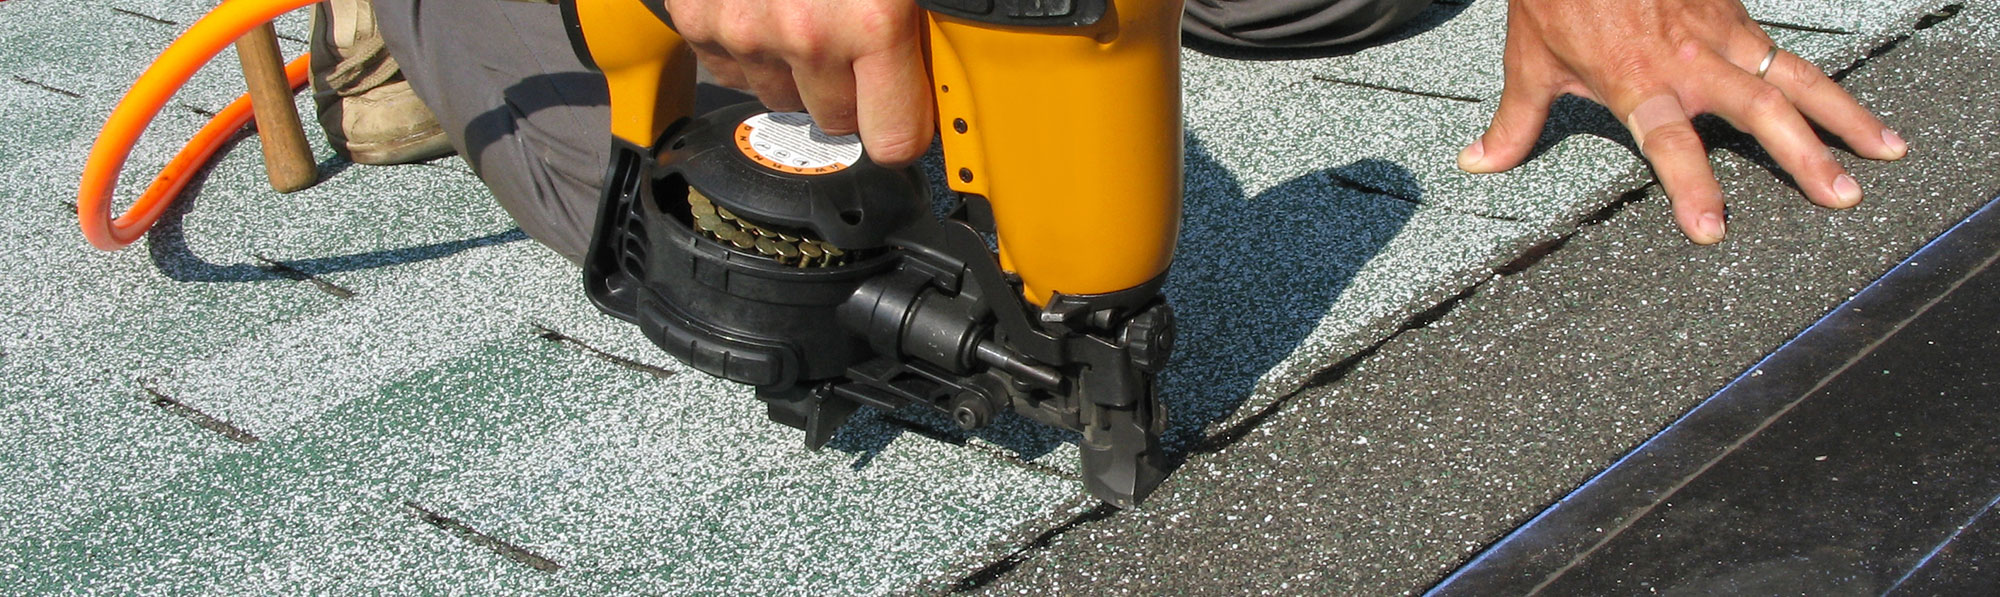 Nail Gun for Shingles